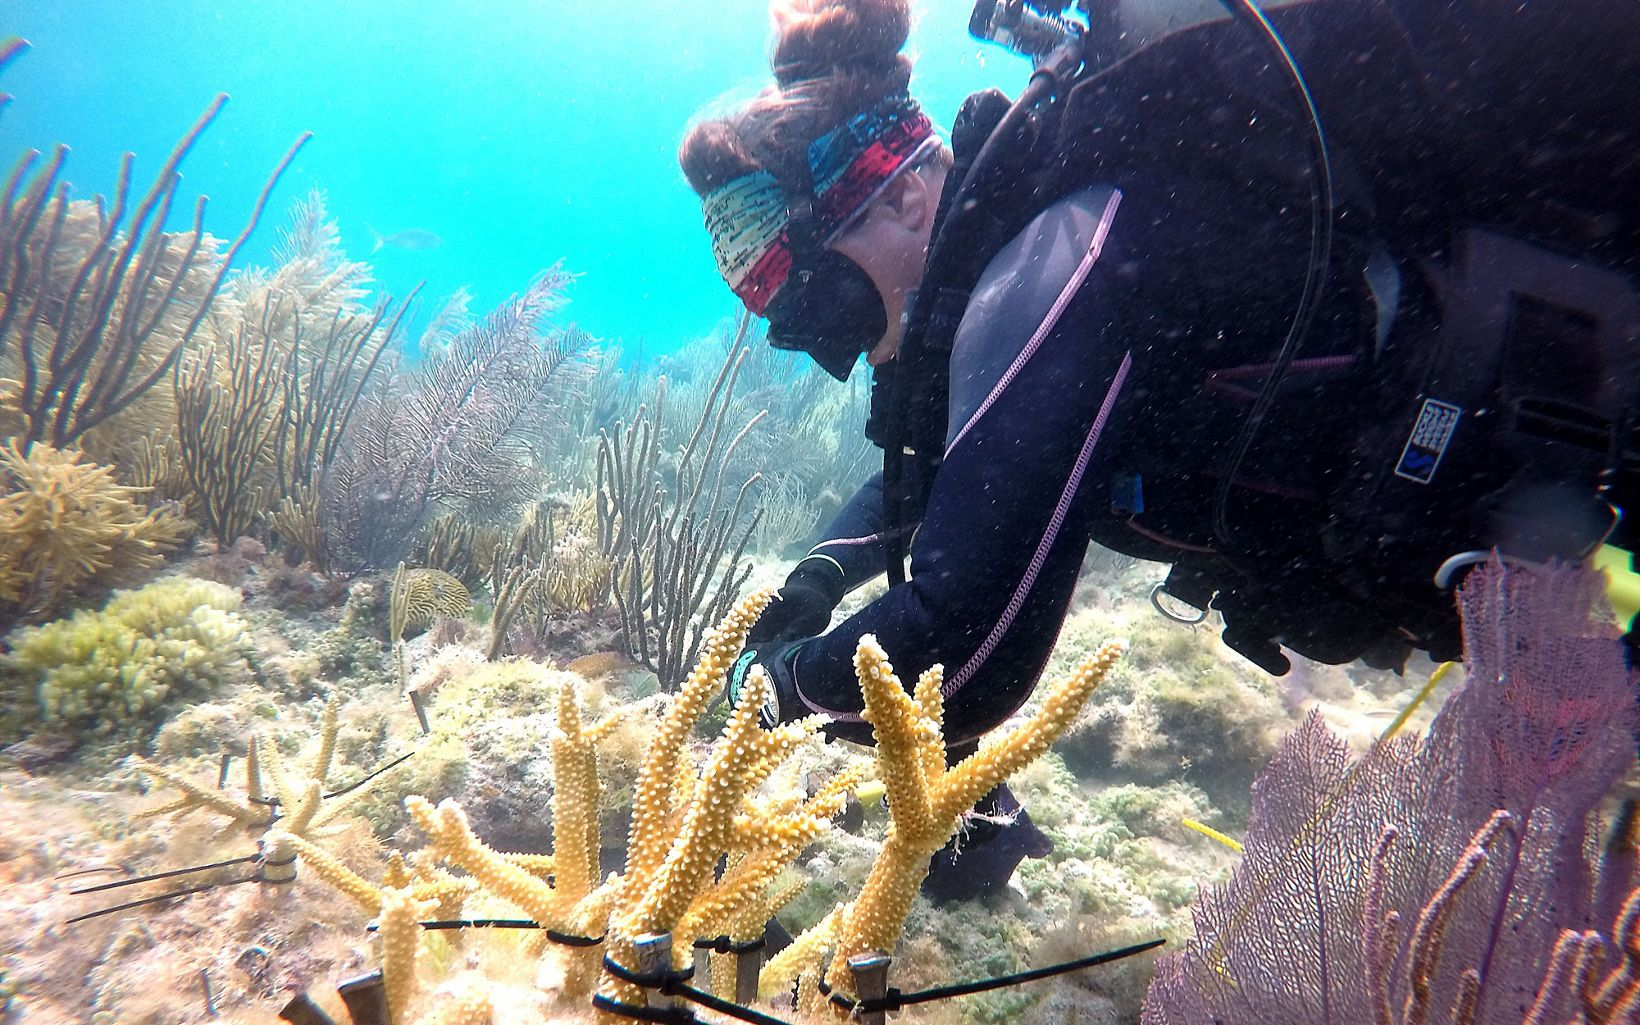 Coral outplanting at the Dry Tortugas National Park, Florida